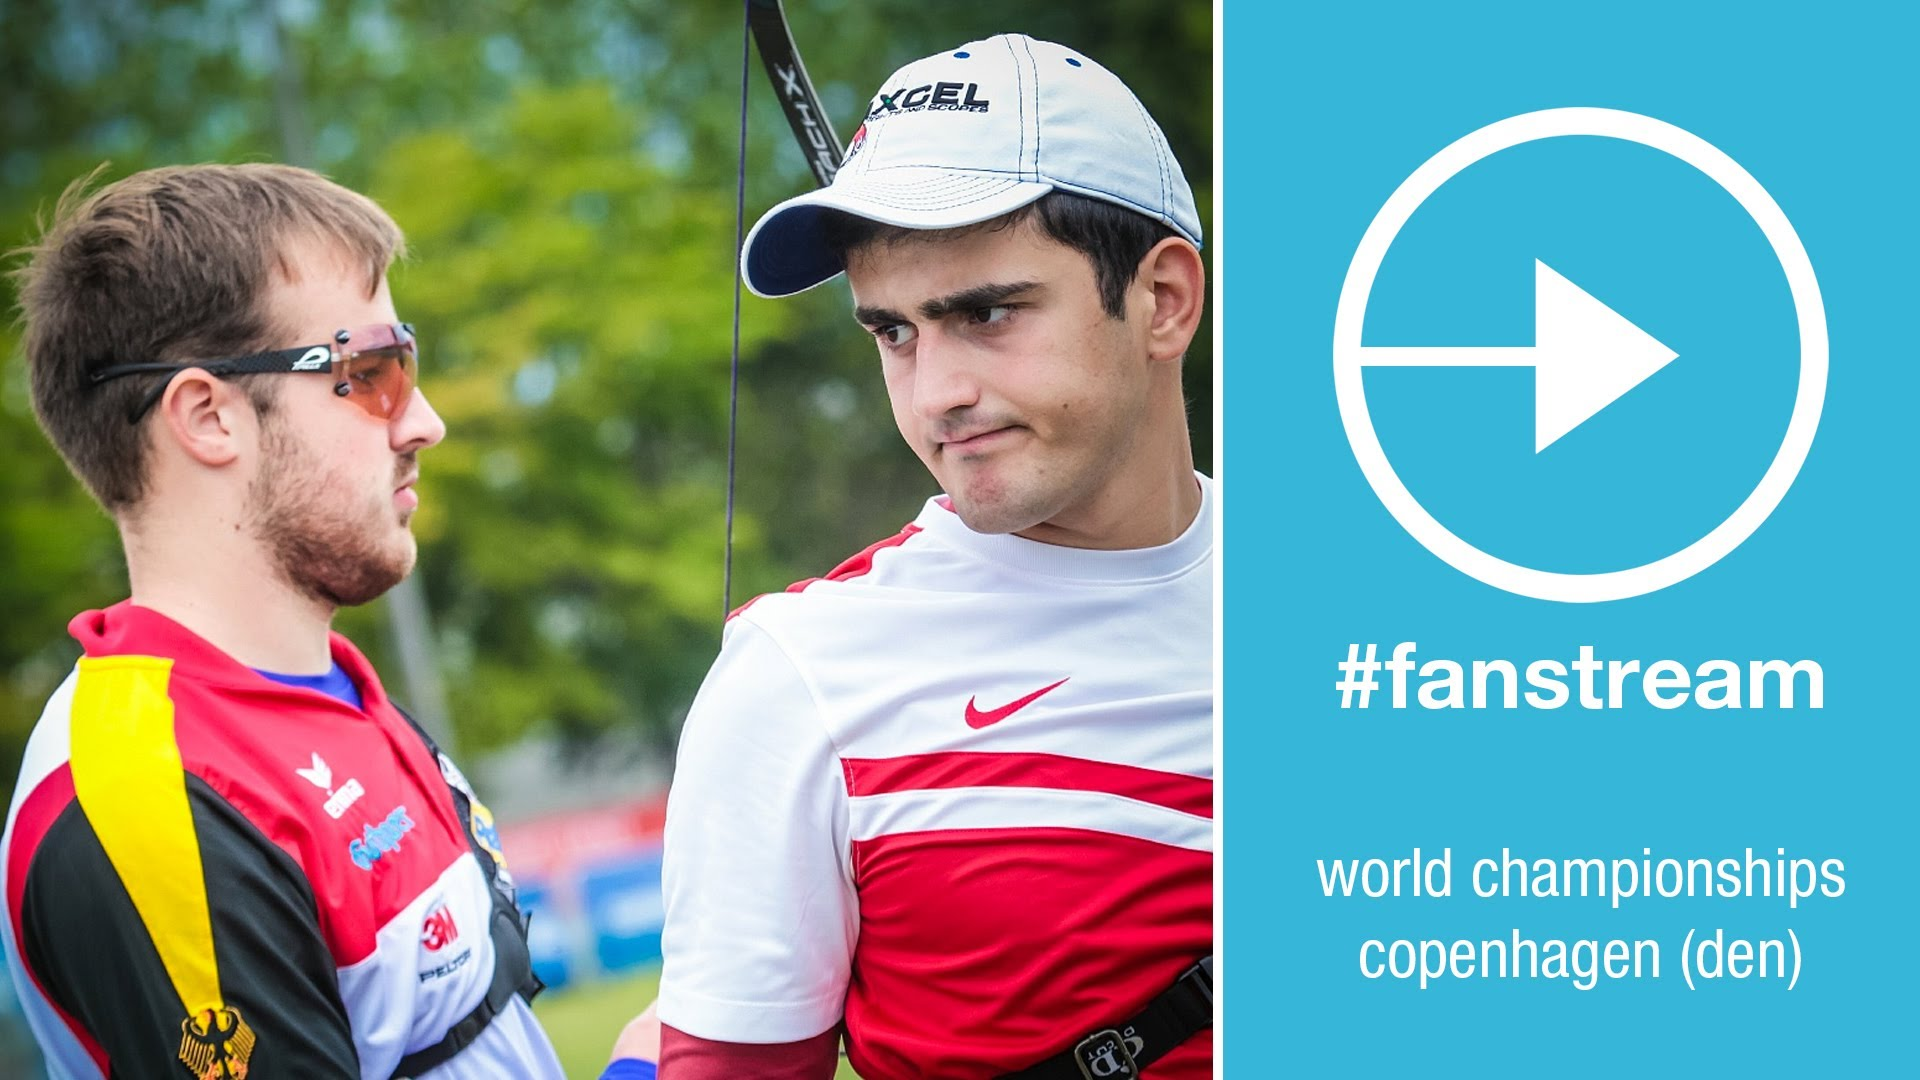 #FanStream Live Session: Olympic Secondary Tournament Qualification | Copenhagen 2015